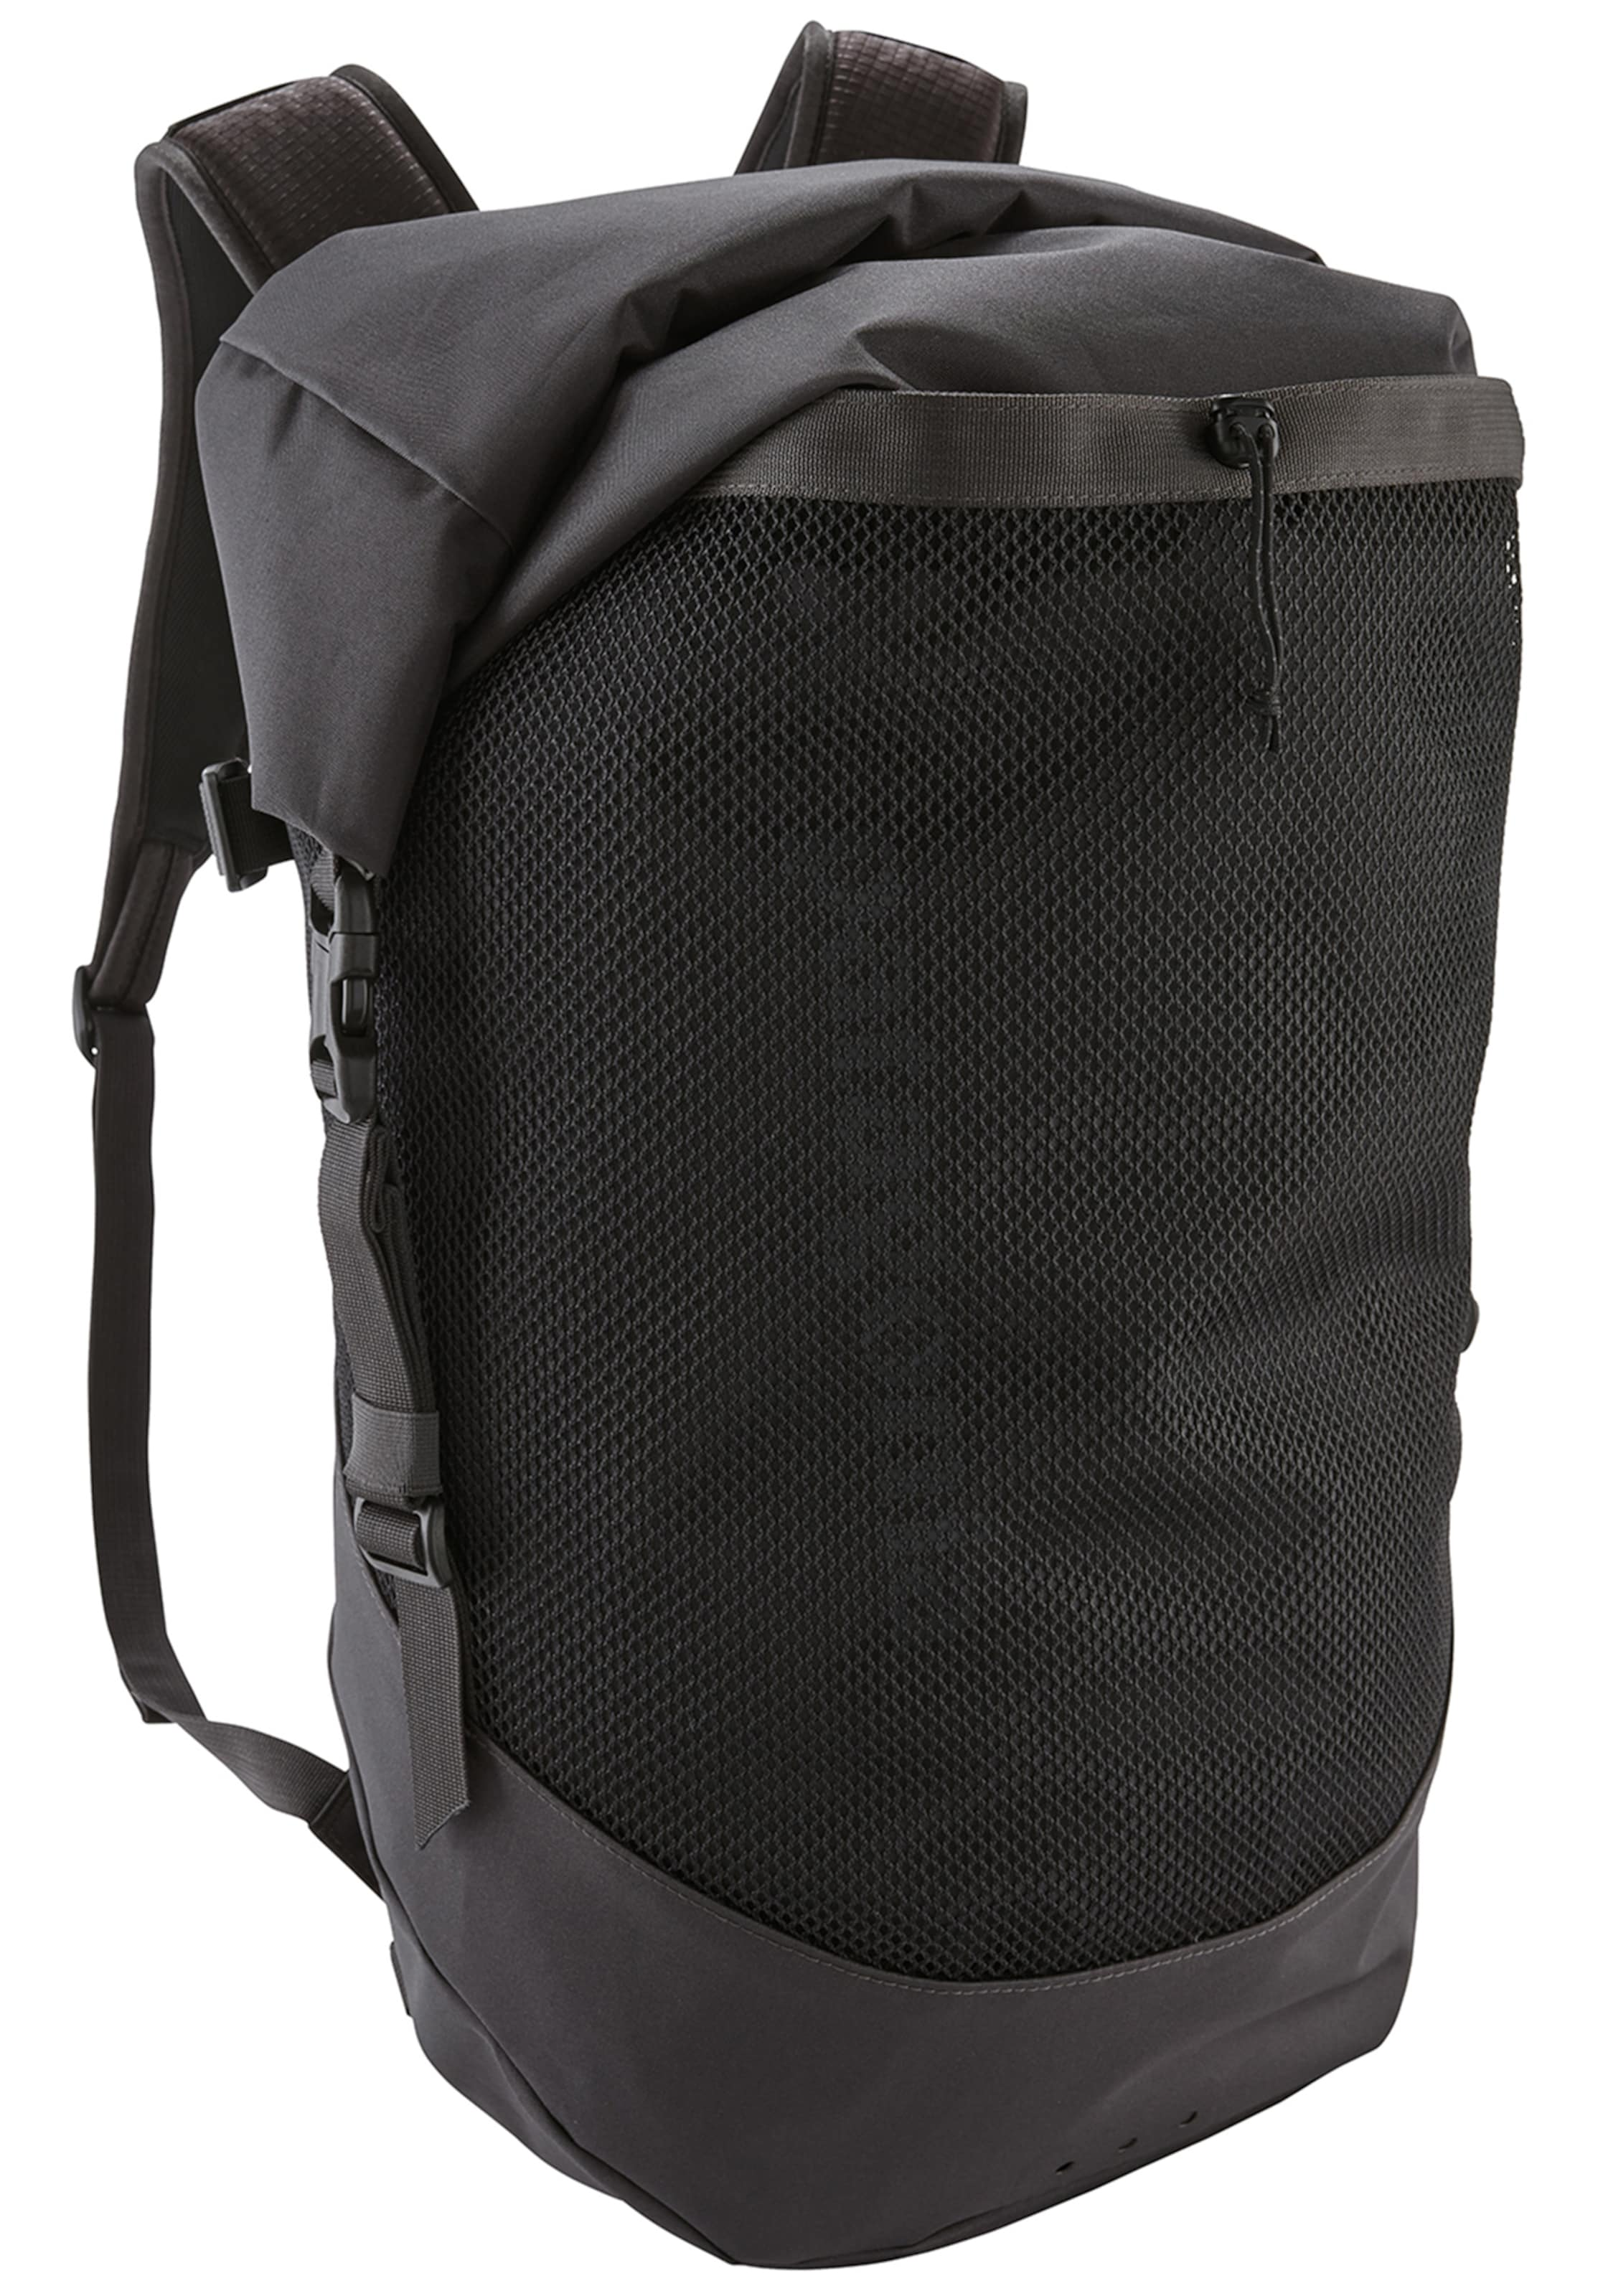 'planing Roll Patagonia Rucksack Schwarz In Top' 35l WEYH9eD2I